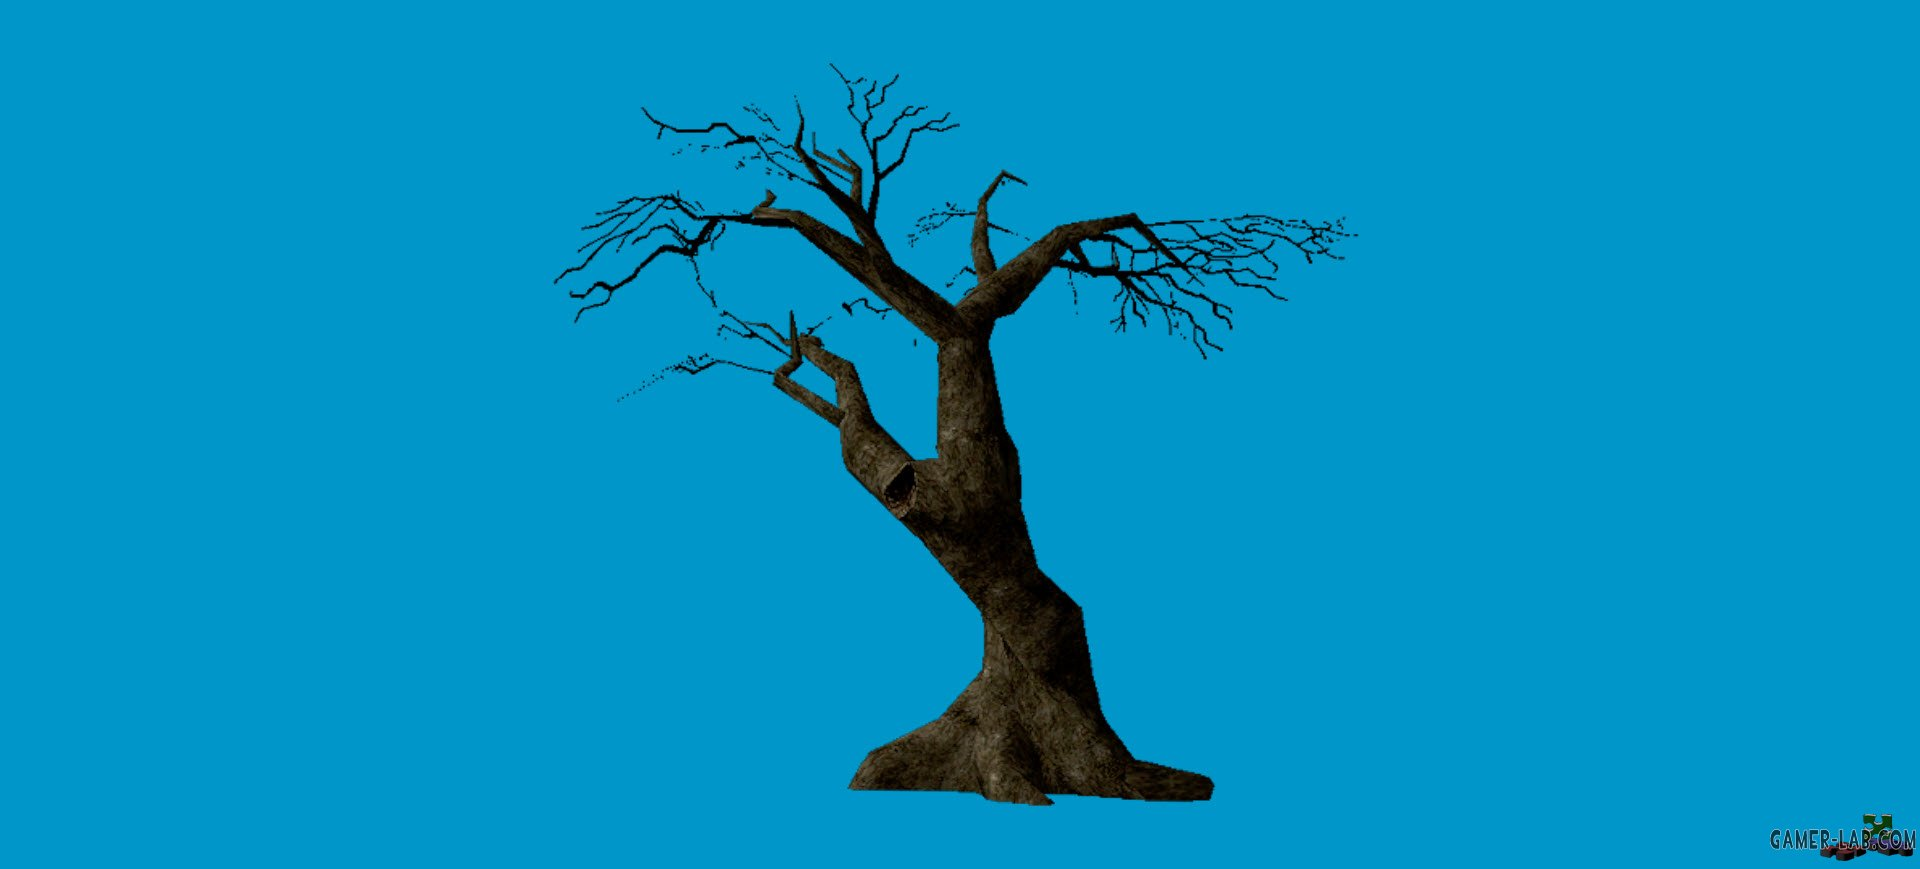 jn_twisttree_01_bb